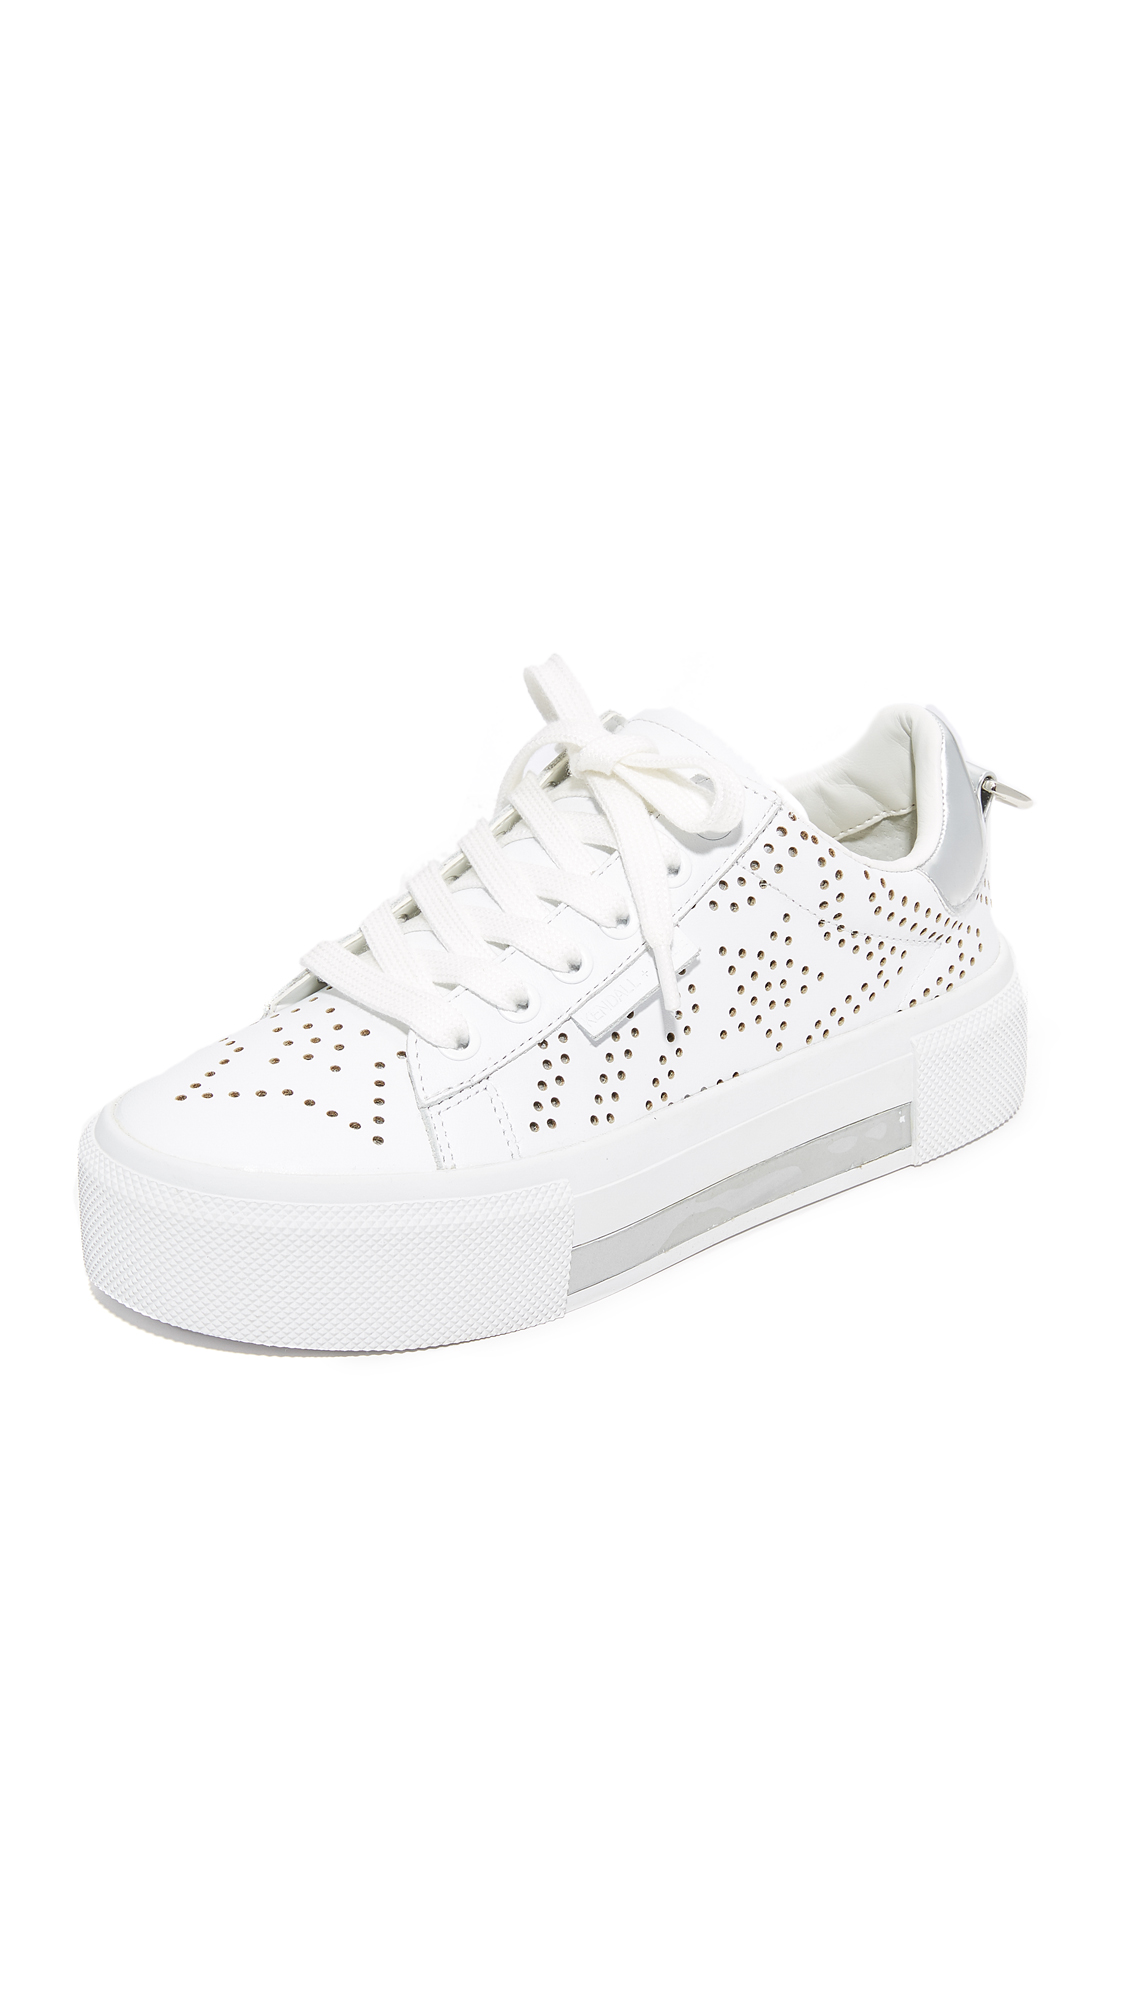 Kendall + Kylie Tyler Star Sneakers in White